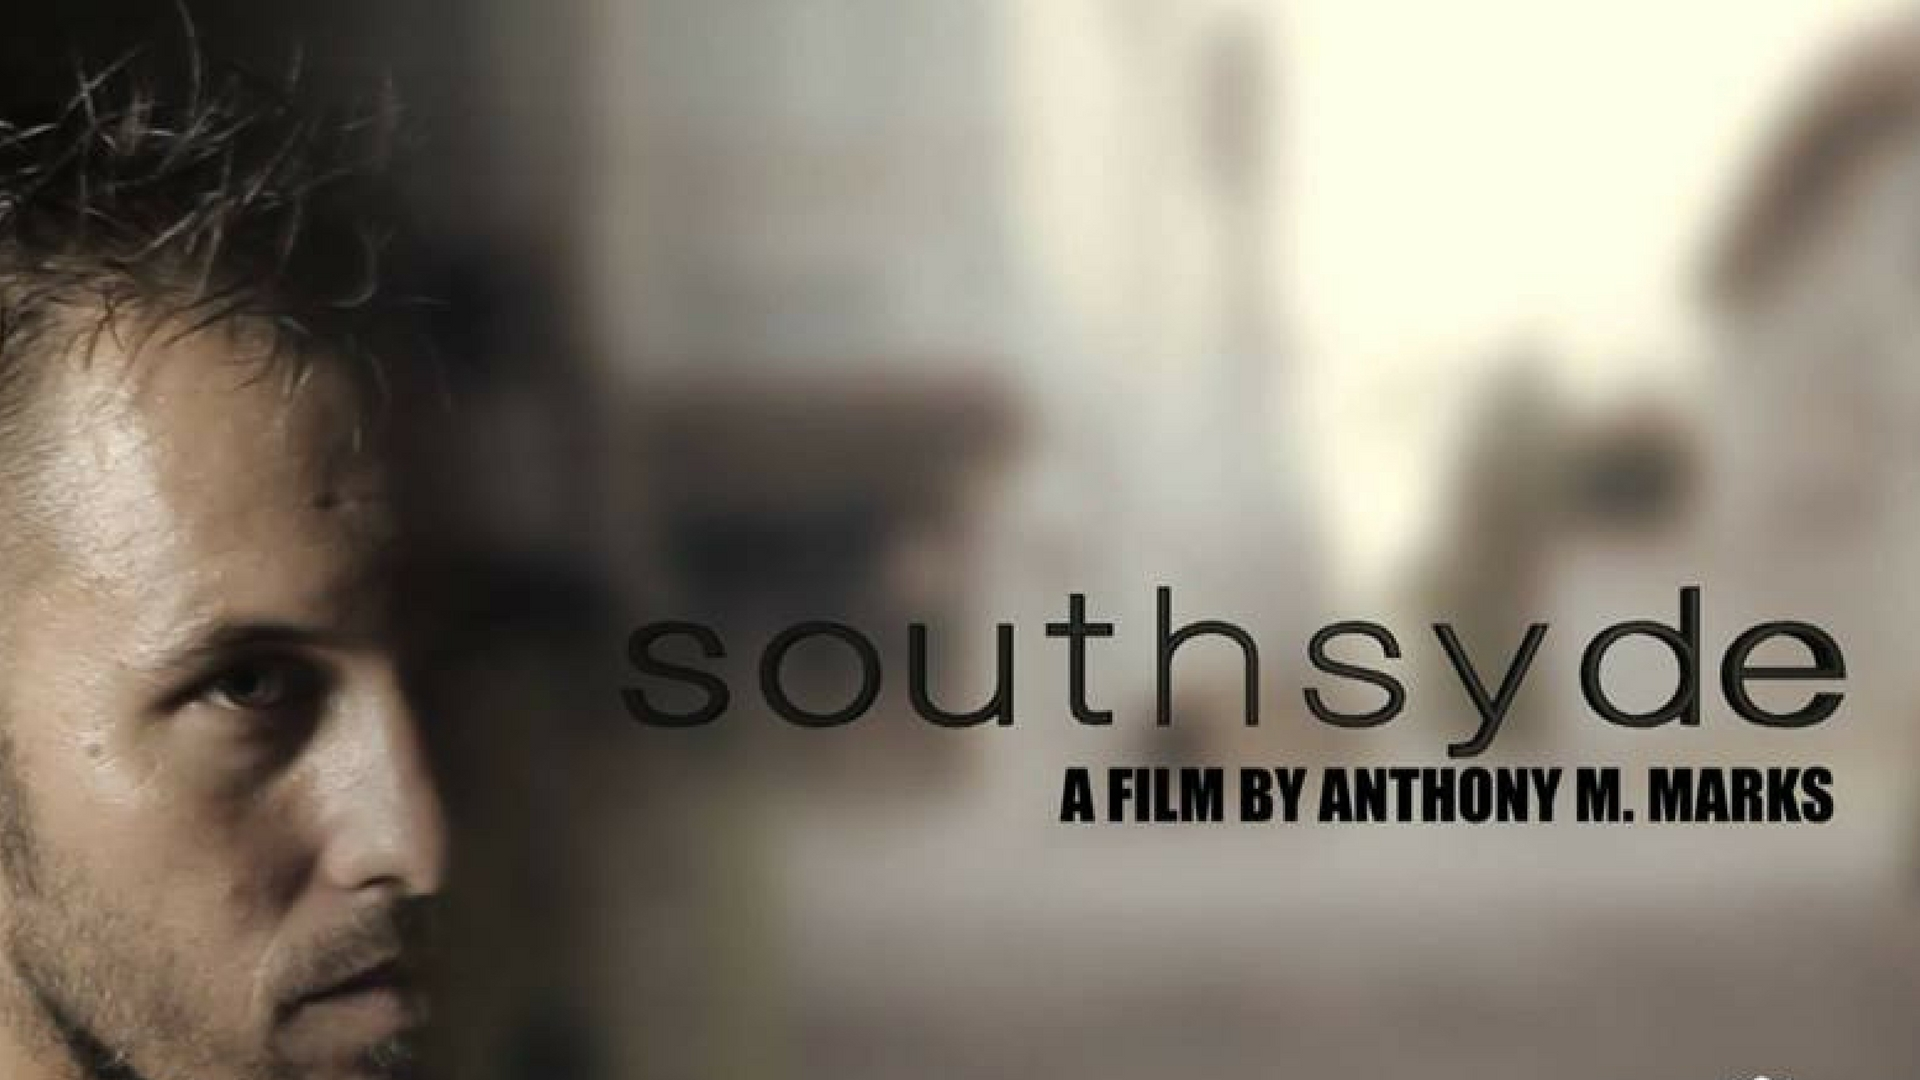 Southsyde